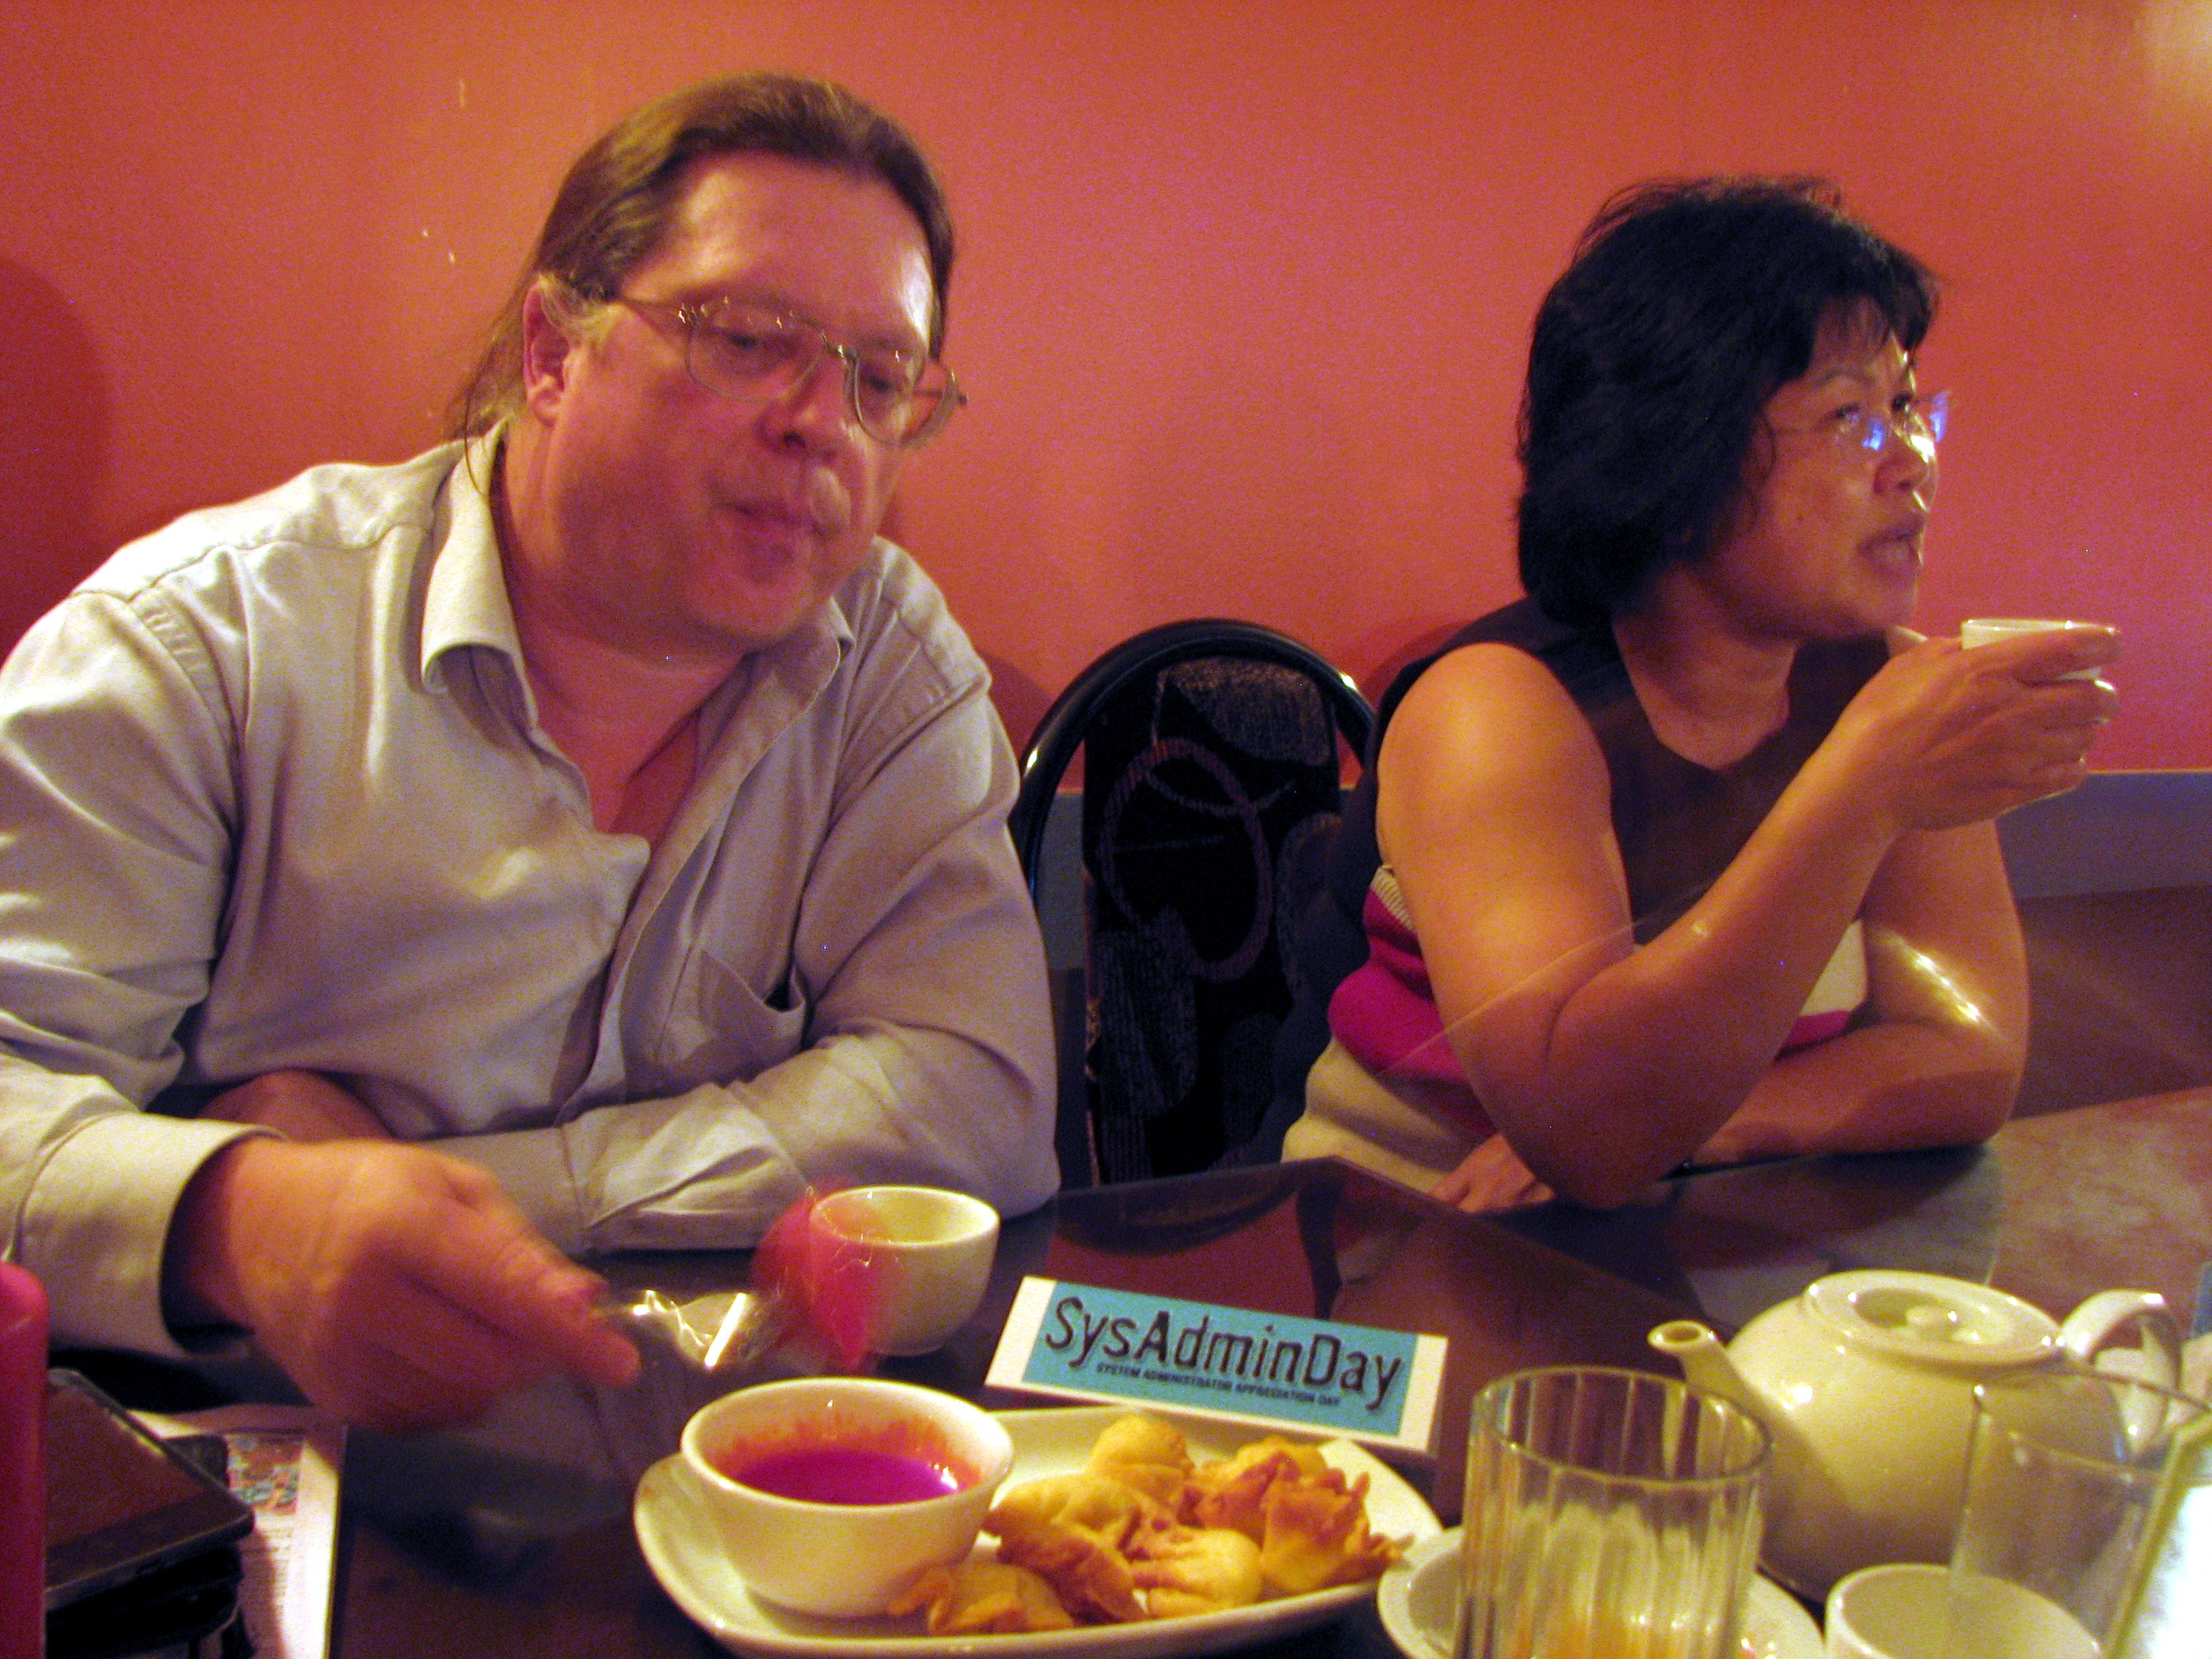 SysAdminDay Dinner, Bob and Becky